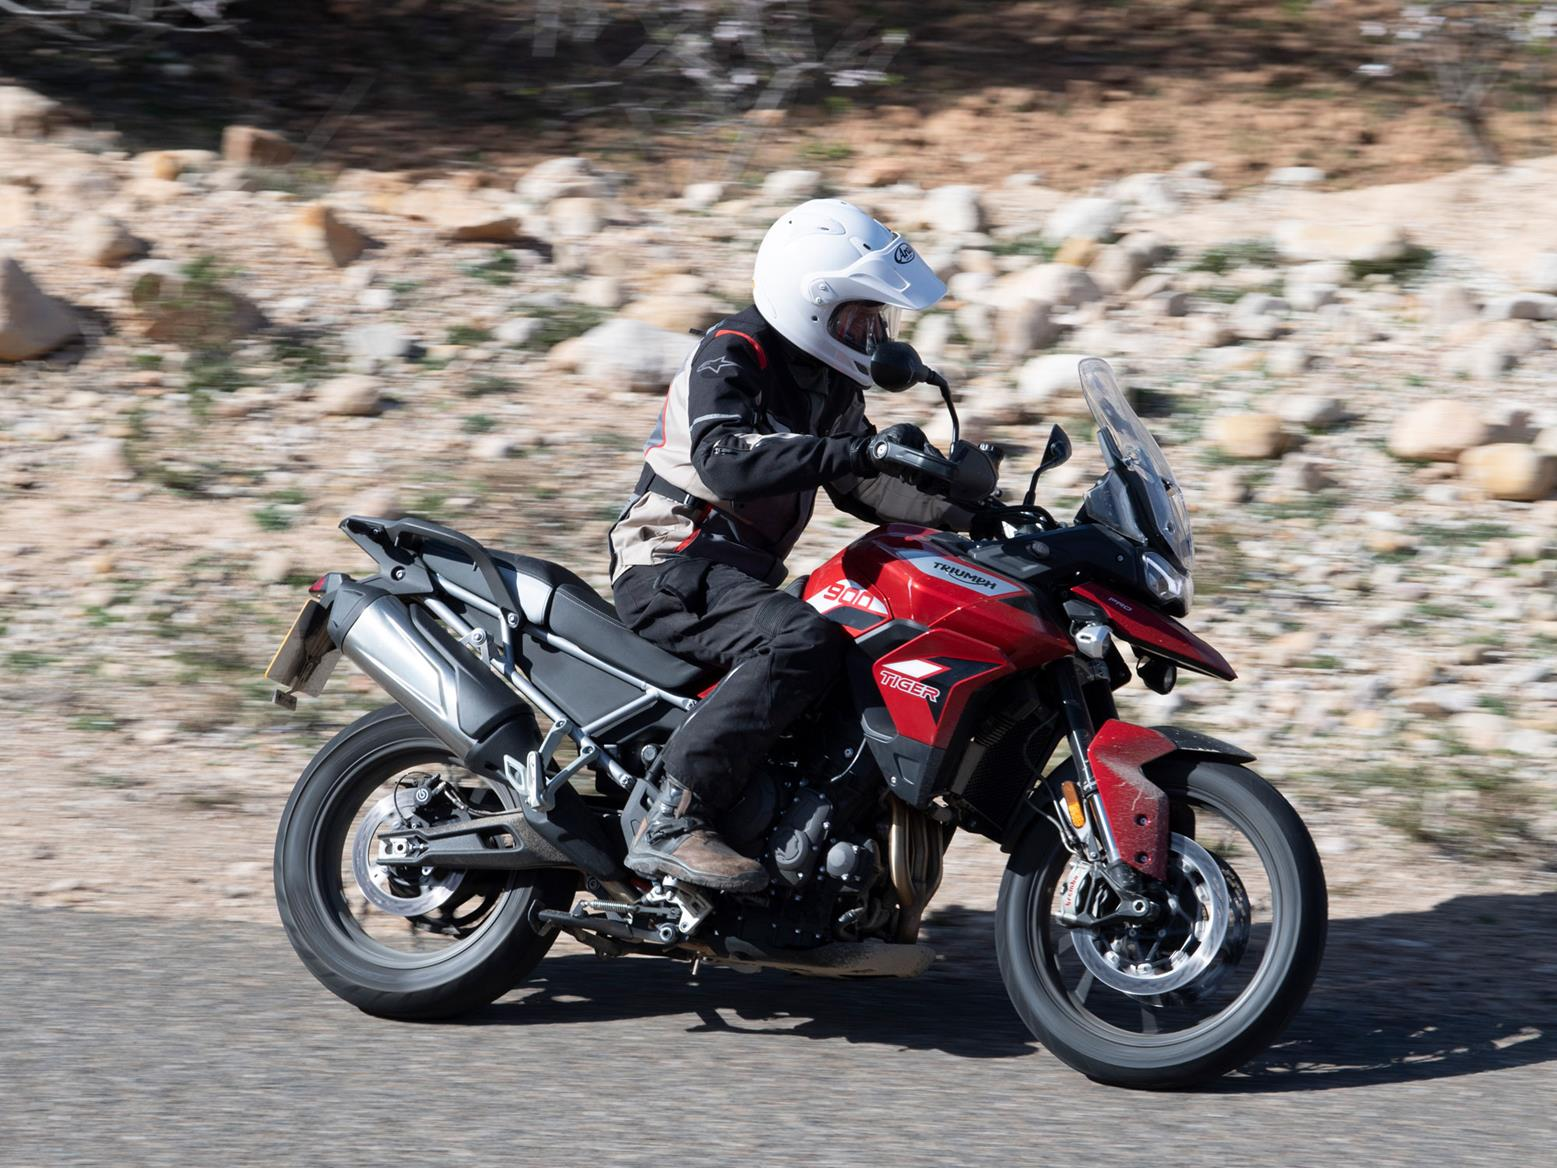 TRIUMPH TIGER 900 GT PRO (2020-on) Review